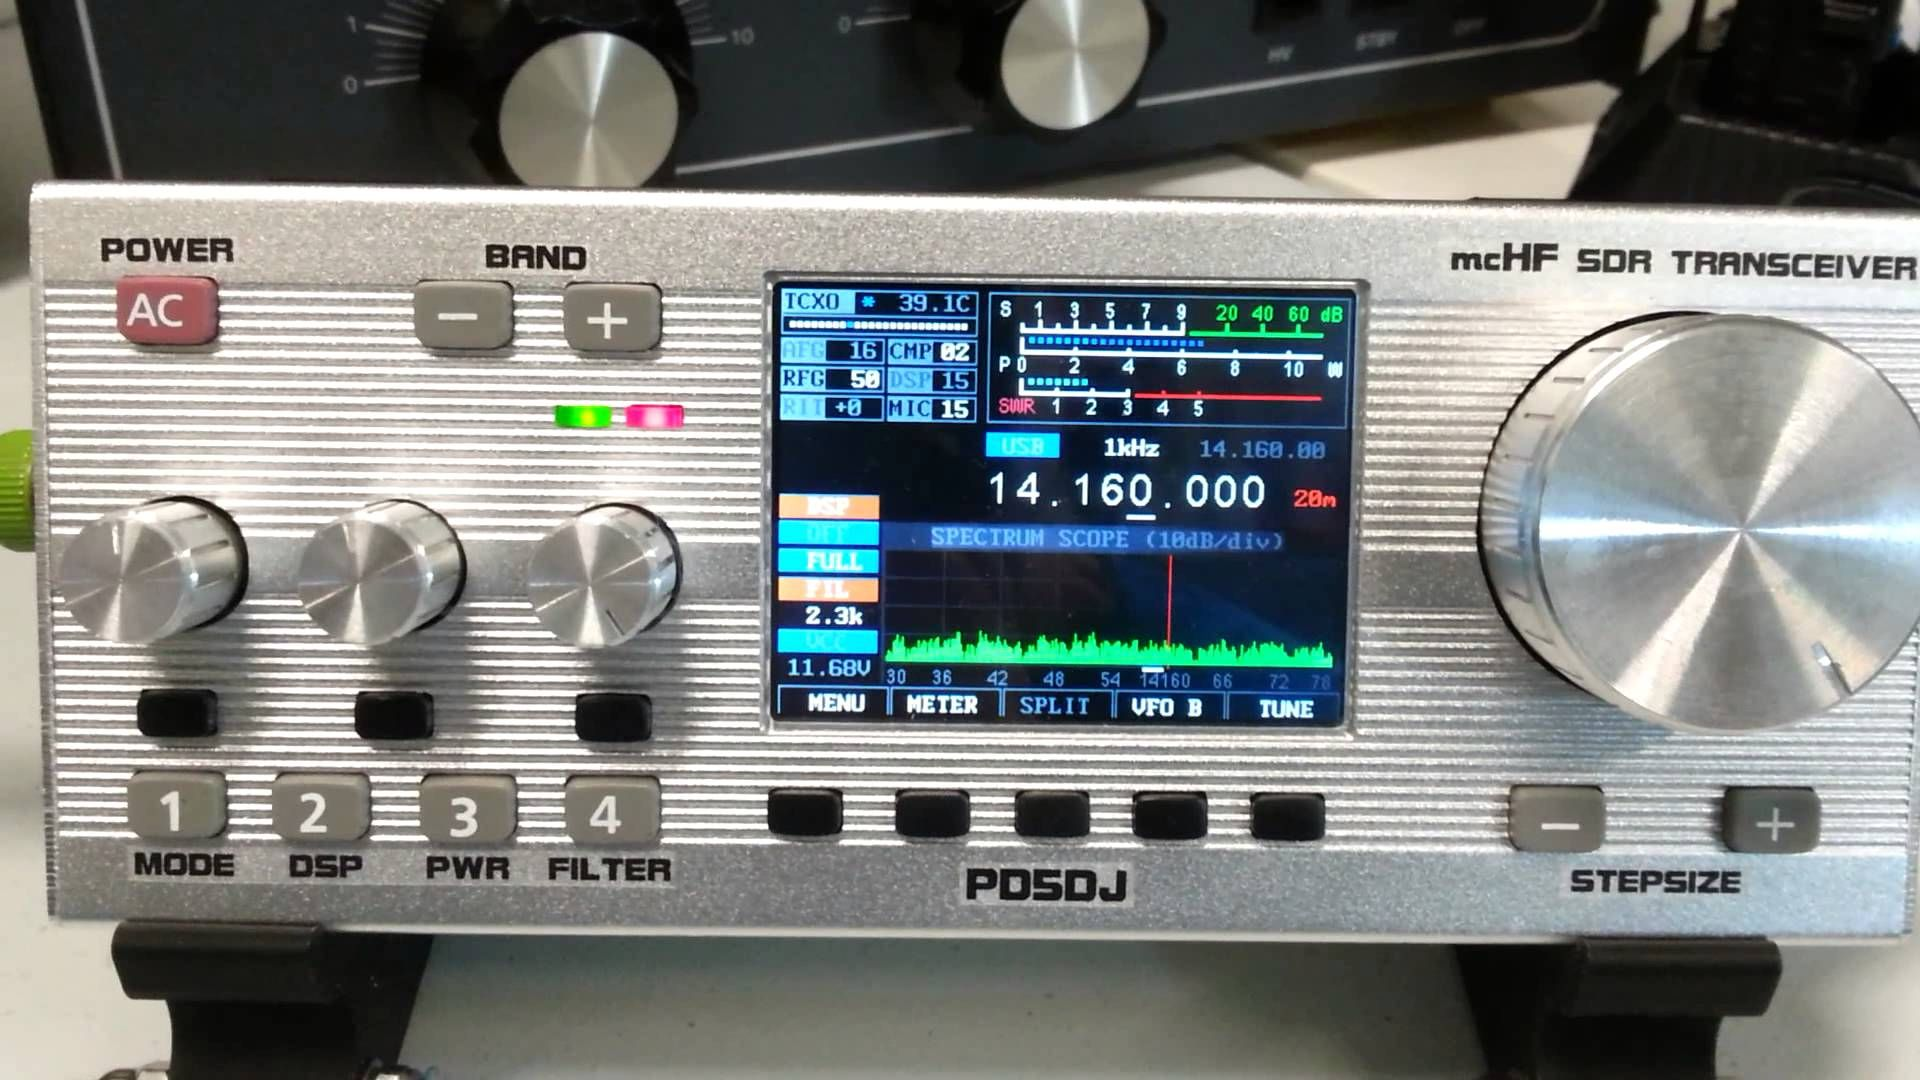 QSO AE2B - PD5DJ/QRP with MCHF SDR Transceiver | Hamshack